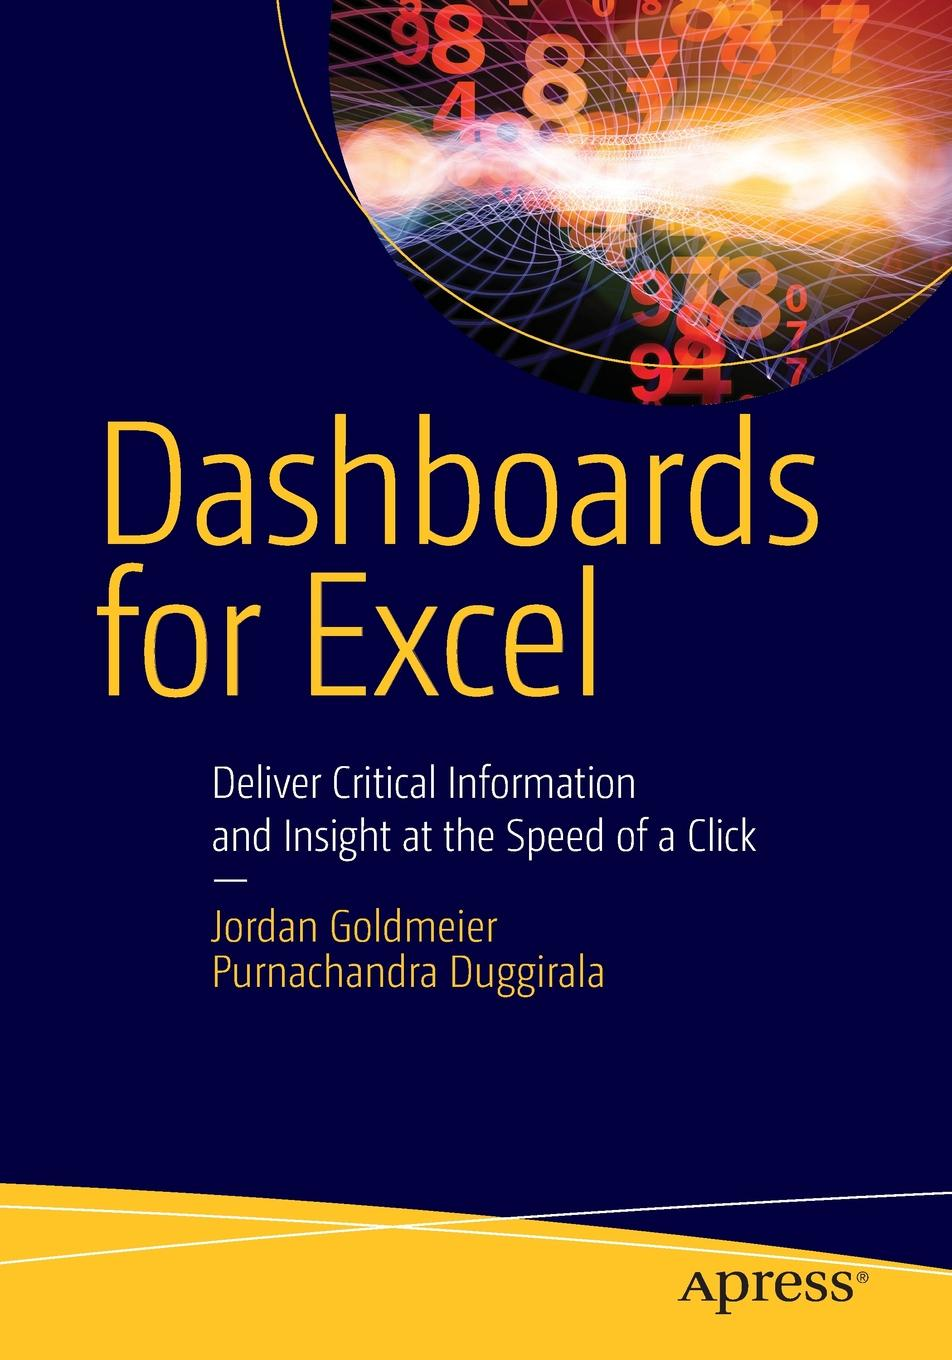 Jordan Goldmeier, Purnachandra Duggirala Dashboards for Excel john walkenbach excel dashboards and reports